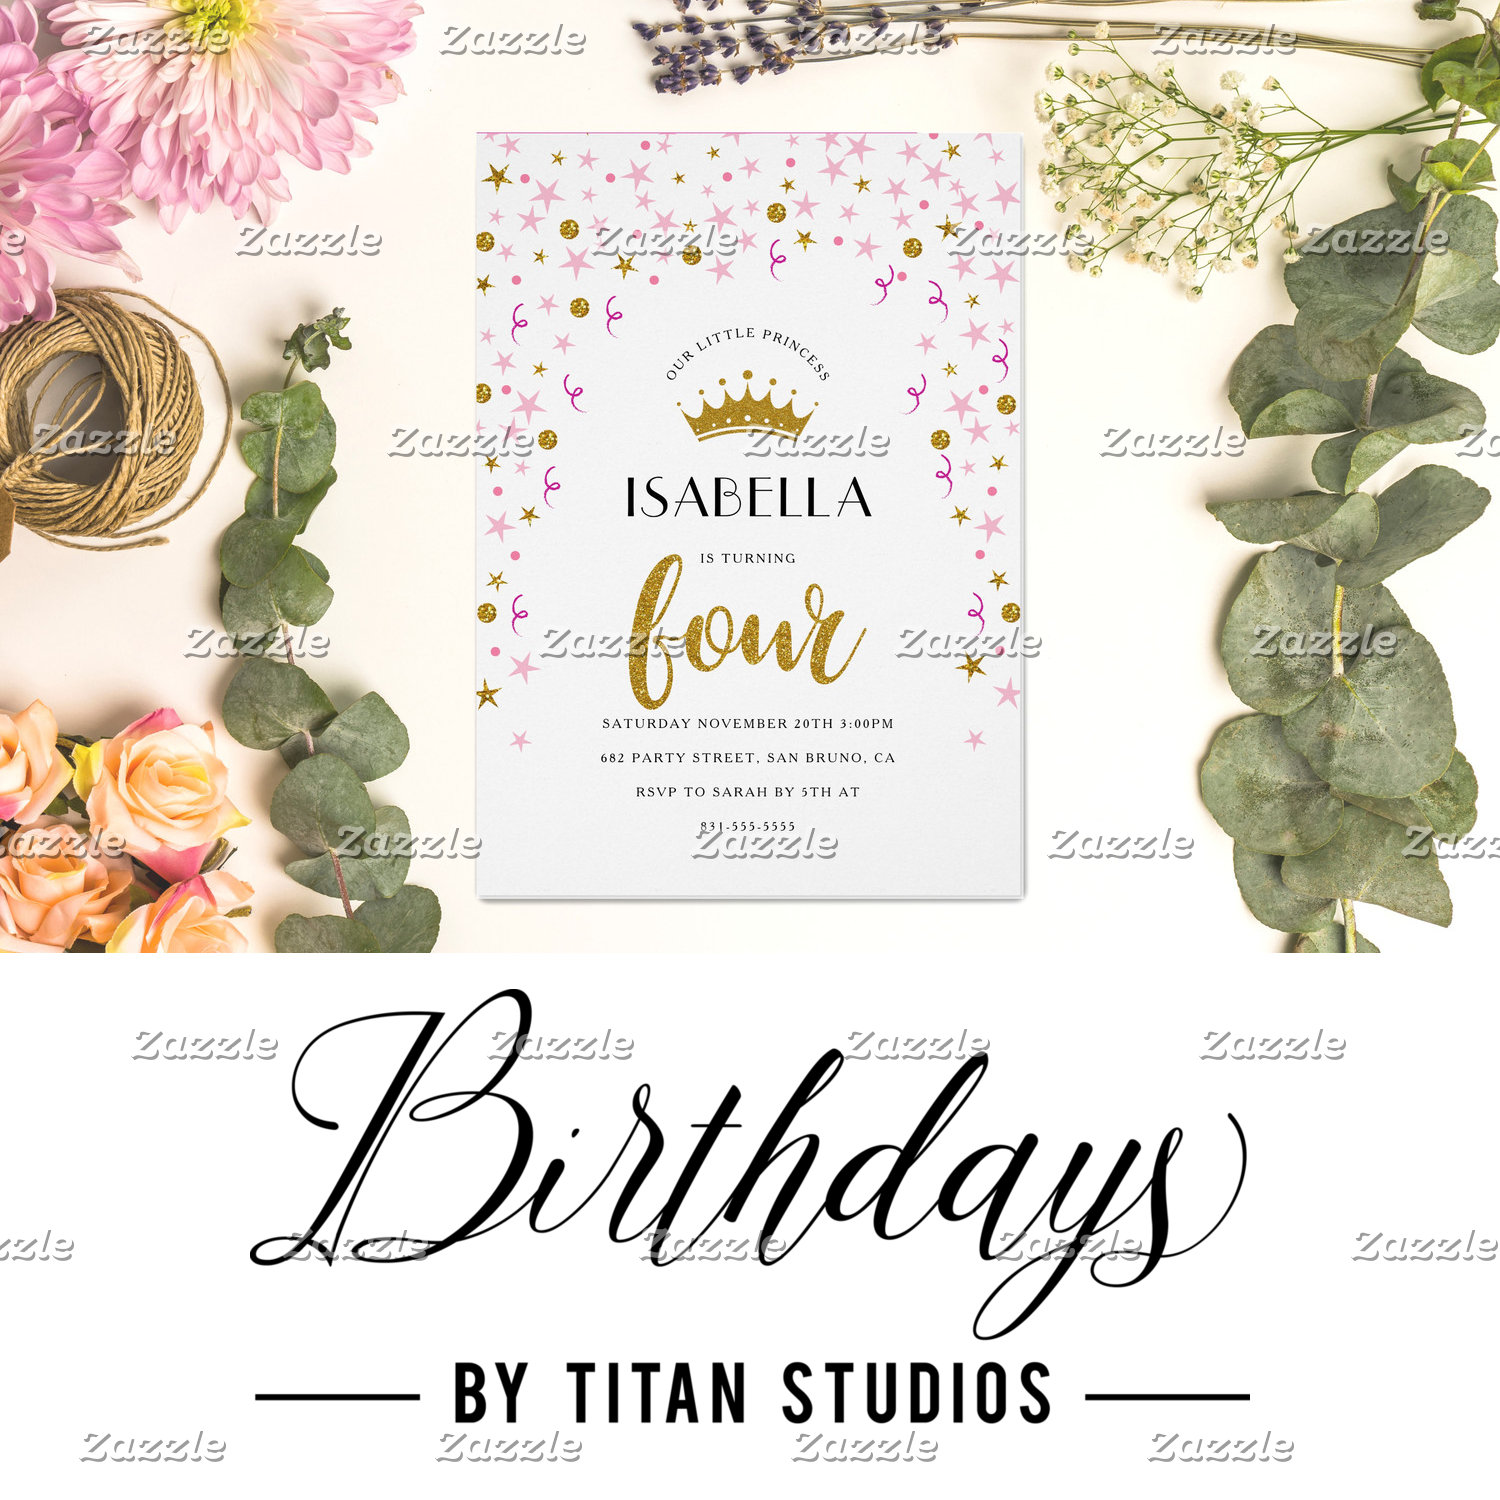 Birthday Invites by Titan Studios